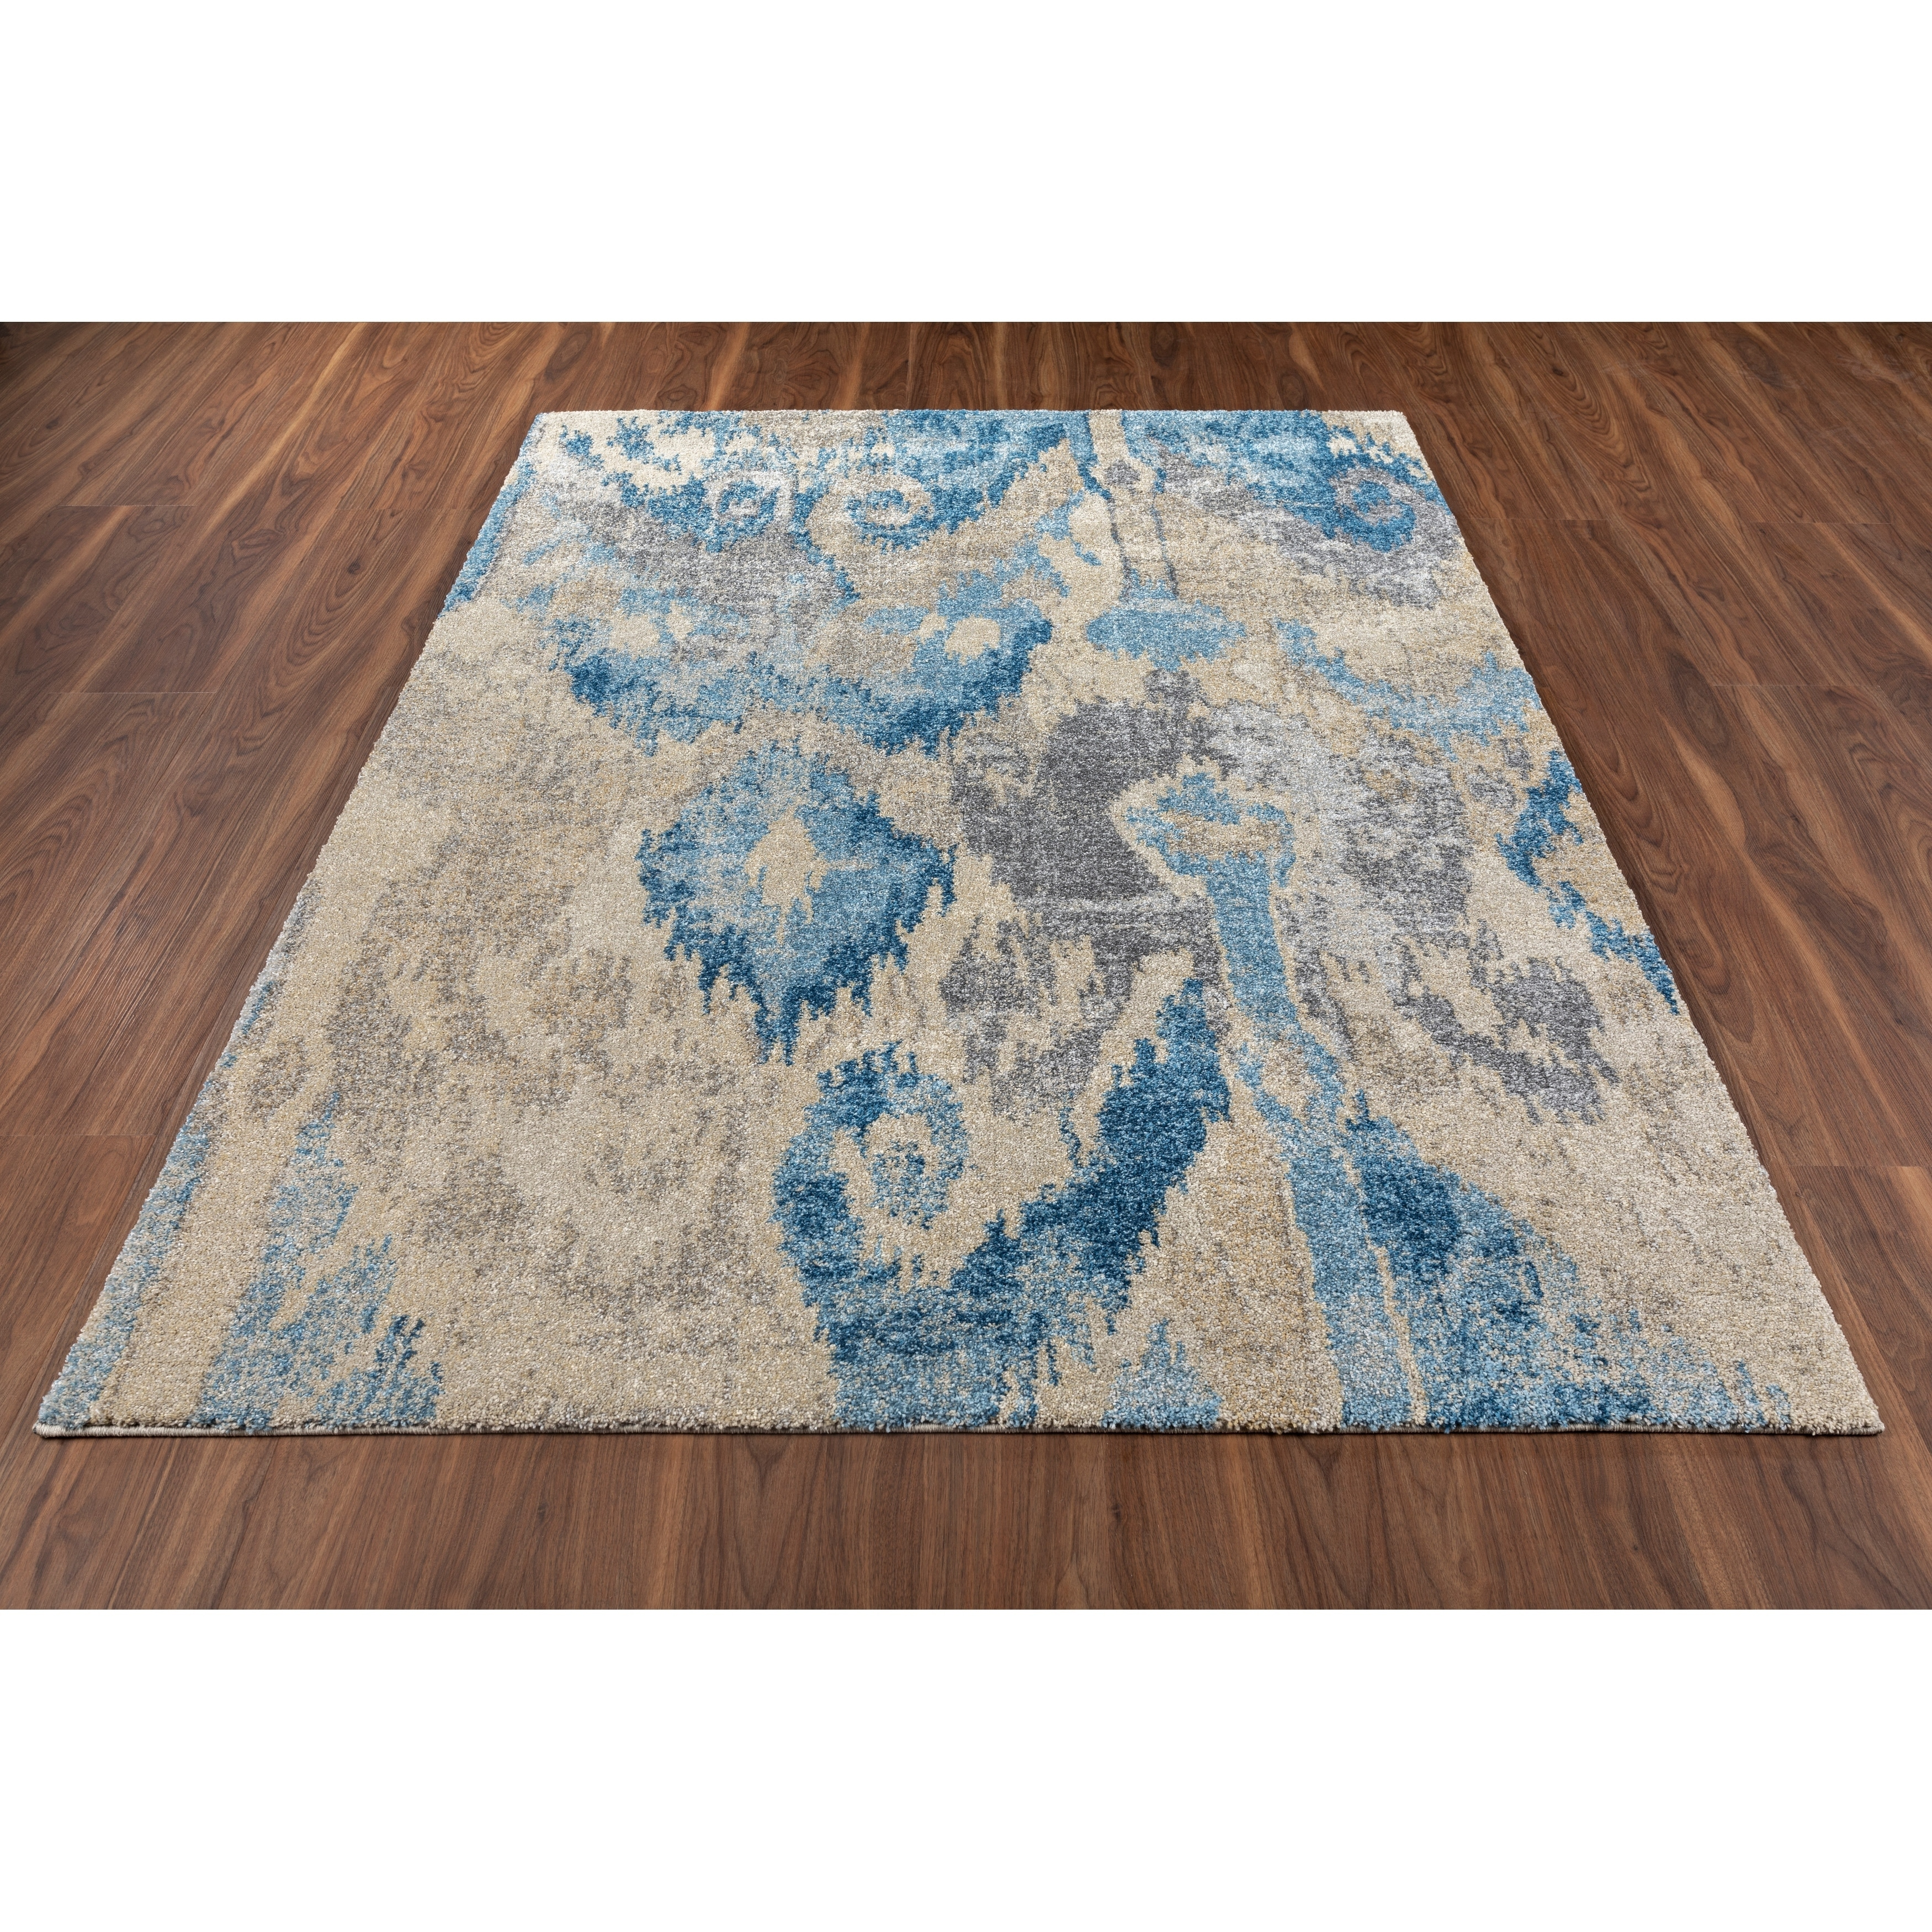 Addison Tobin Abstract Ikat Blue Area Rug Overstock 28420103 3 3 X5 3 Blue